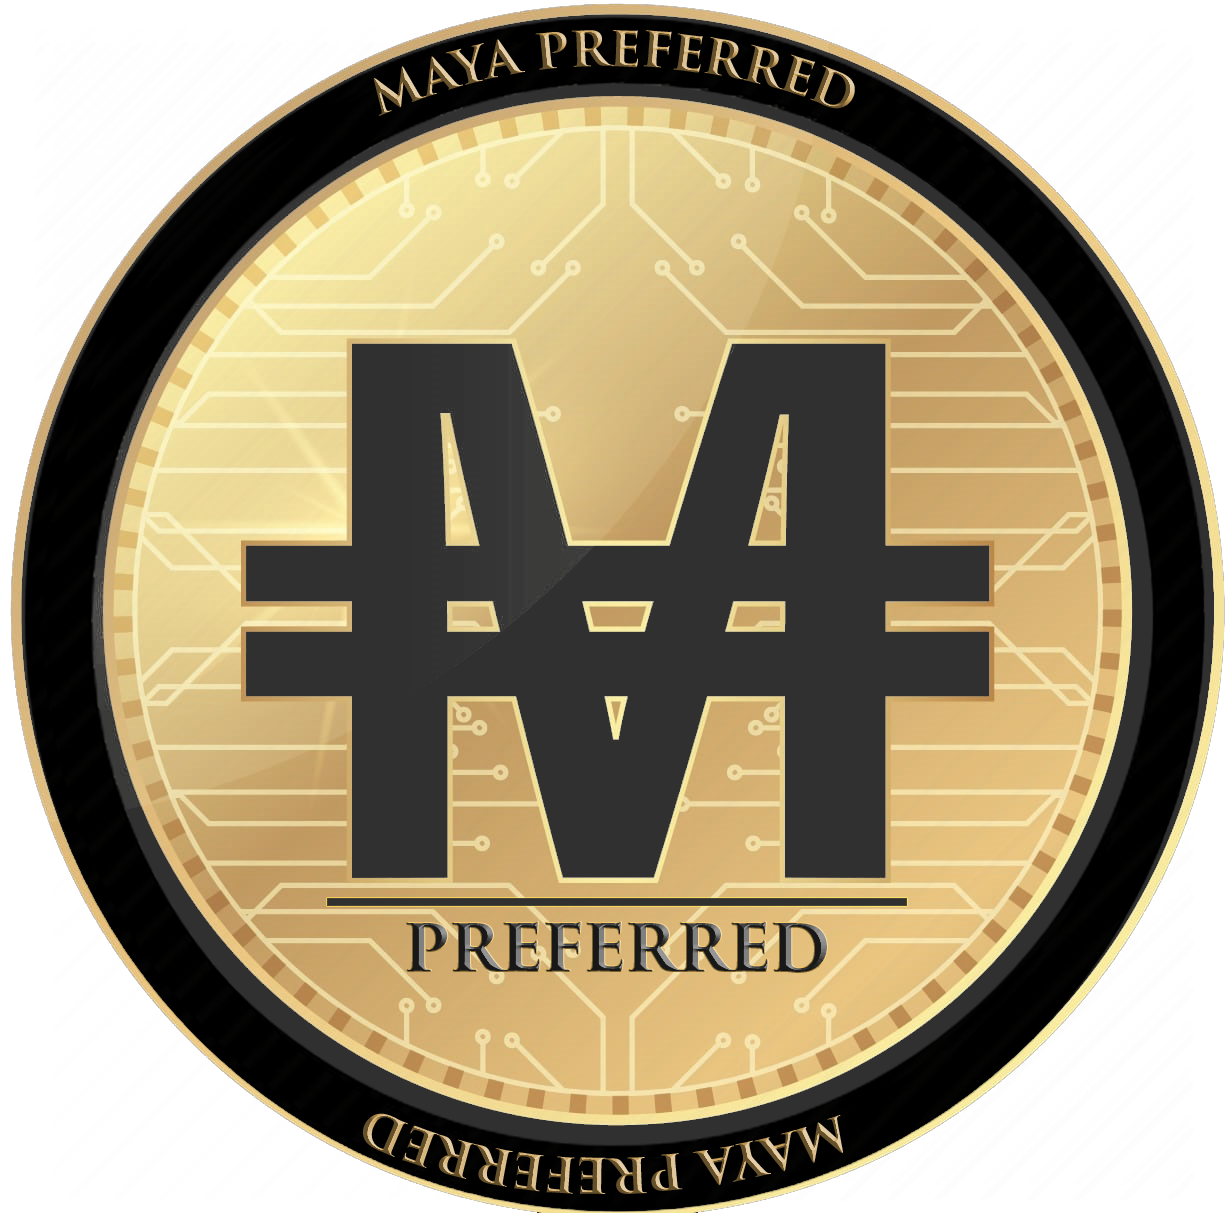 All media sites are talking about Maya Preferred 223 and its Bitcoin gold and silver backing.